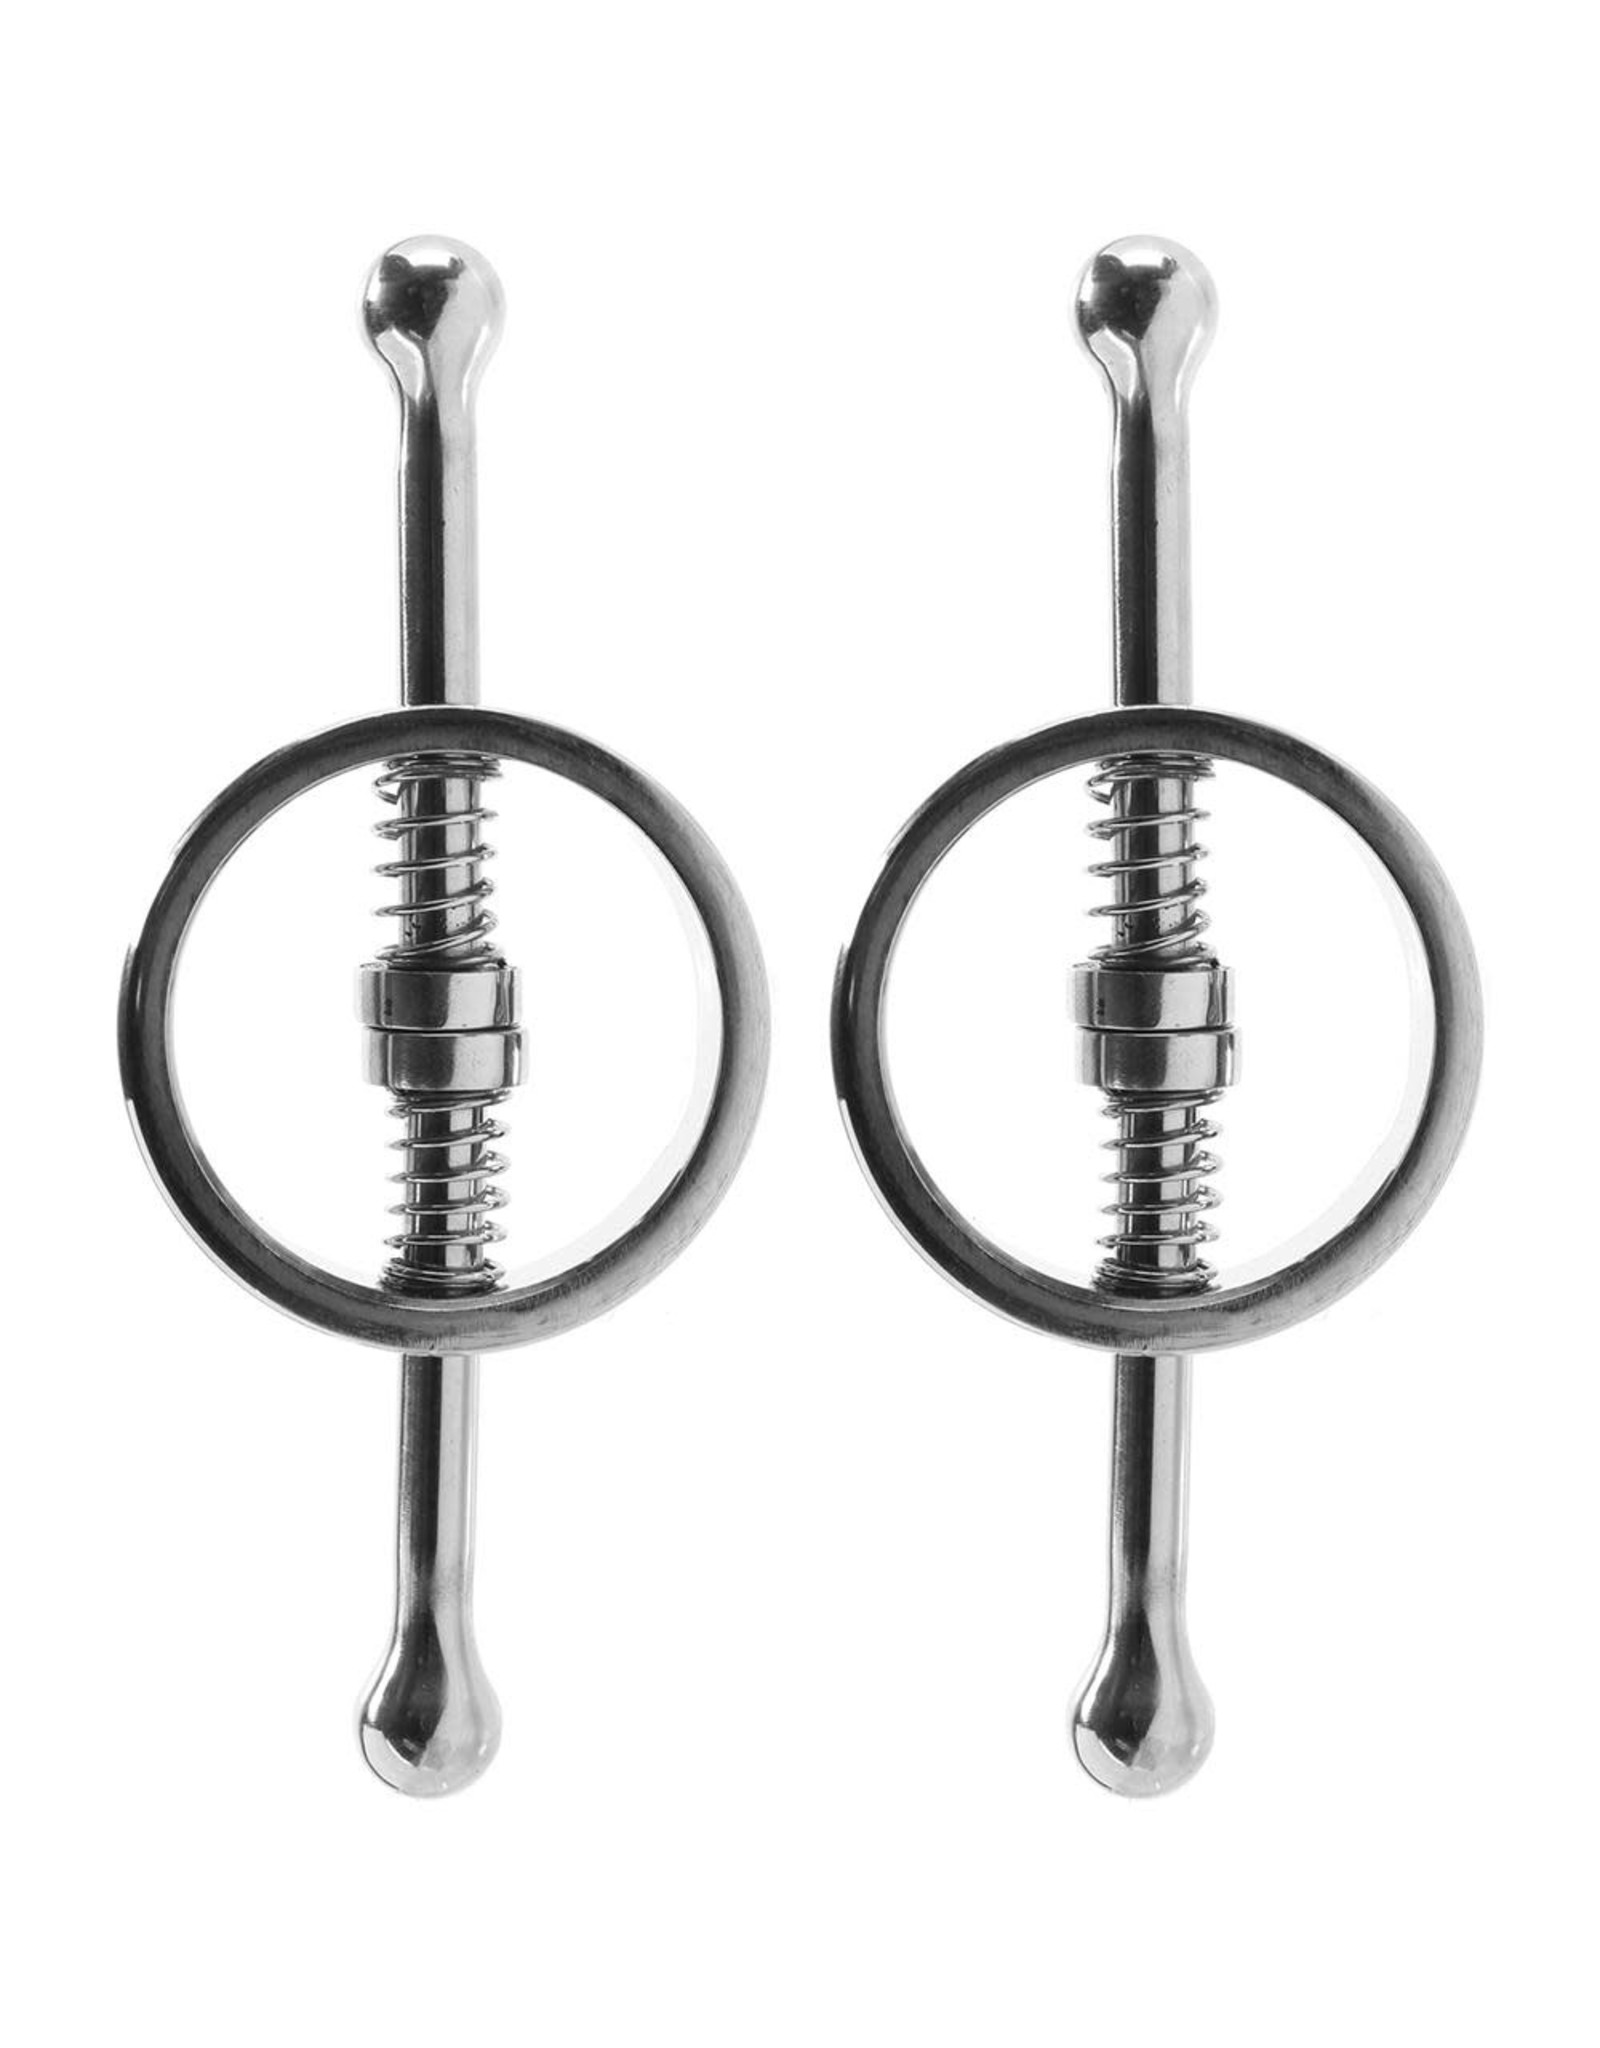 Rouge- Spring Loaded Nipple Clamps- Stainless Steel